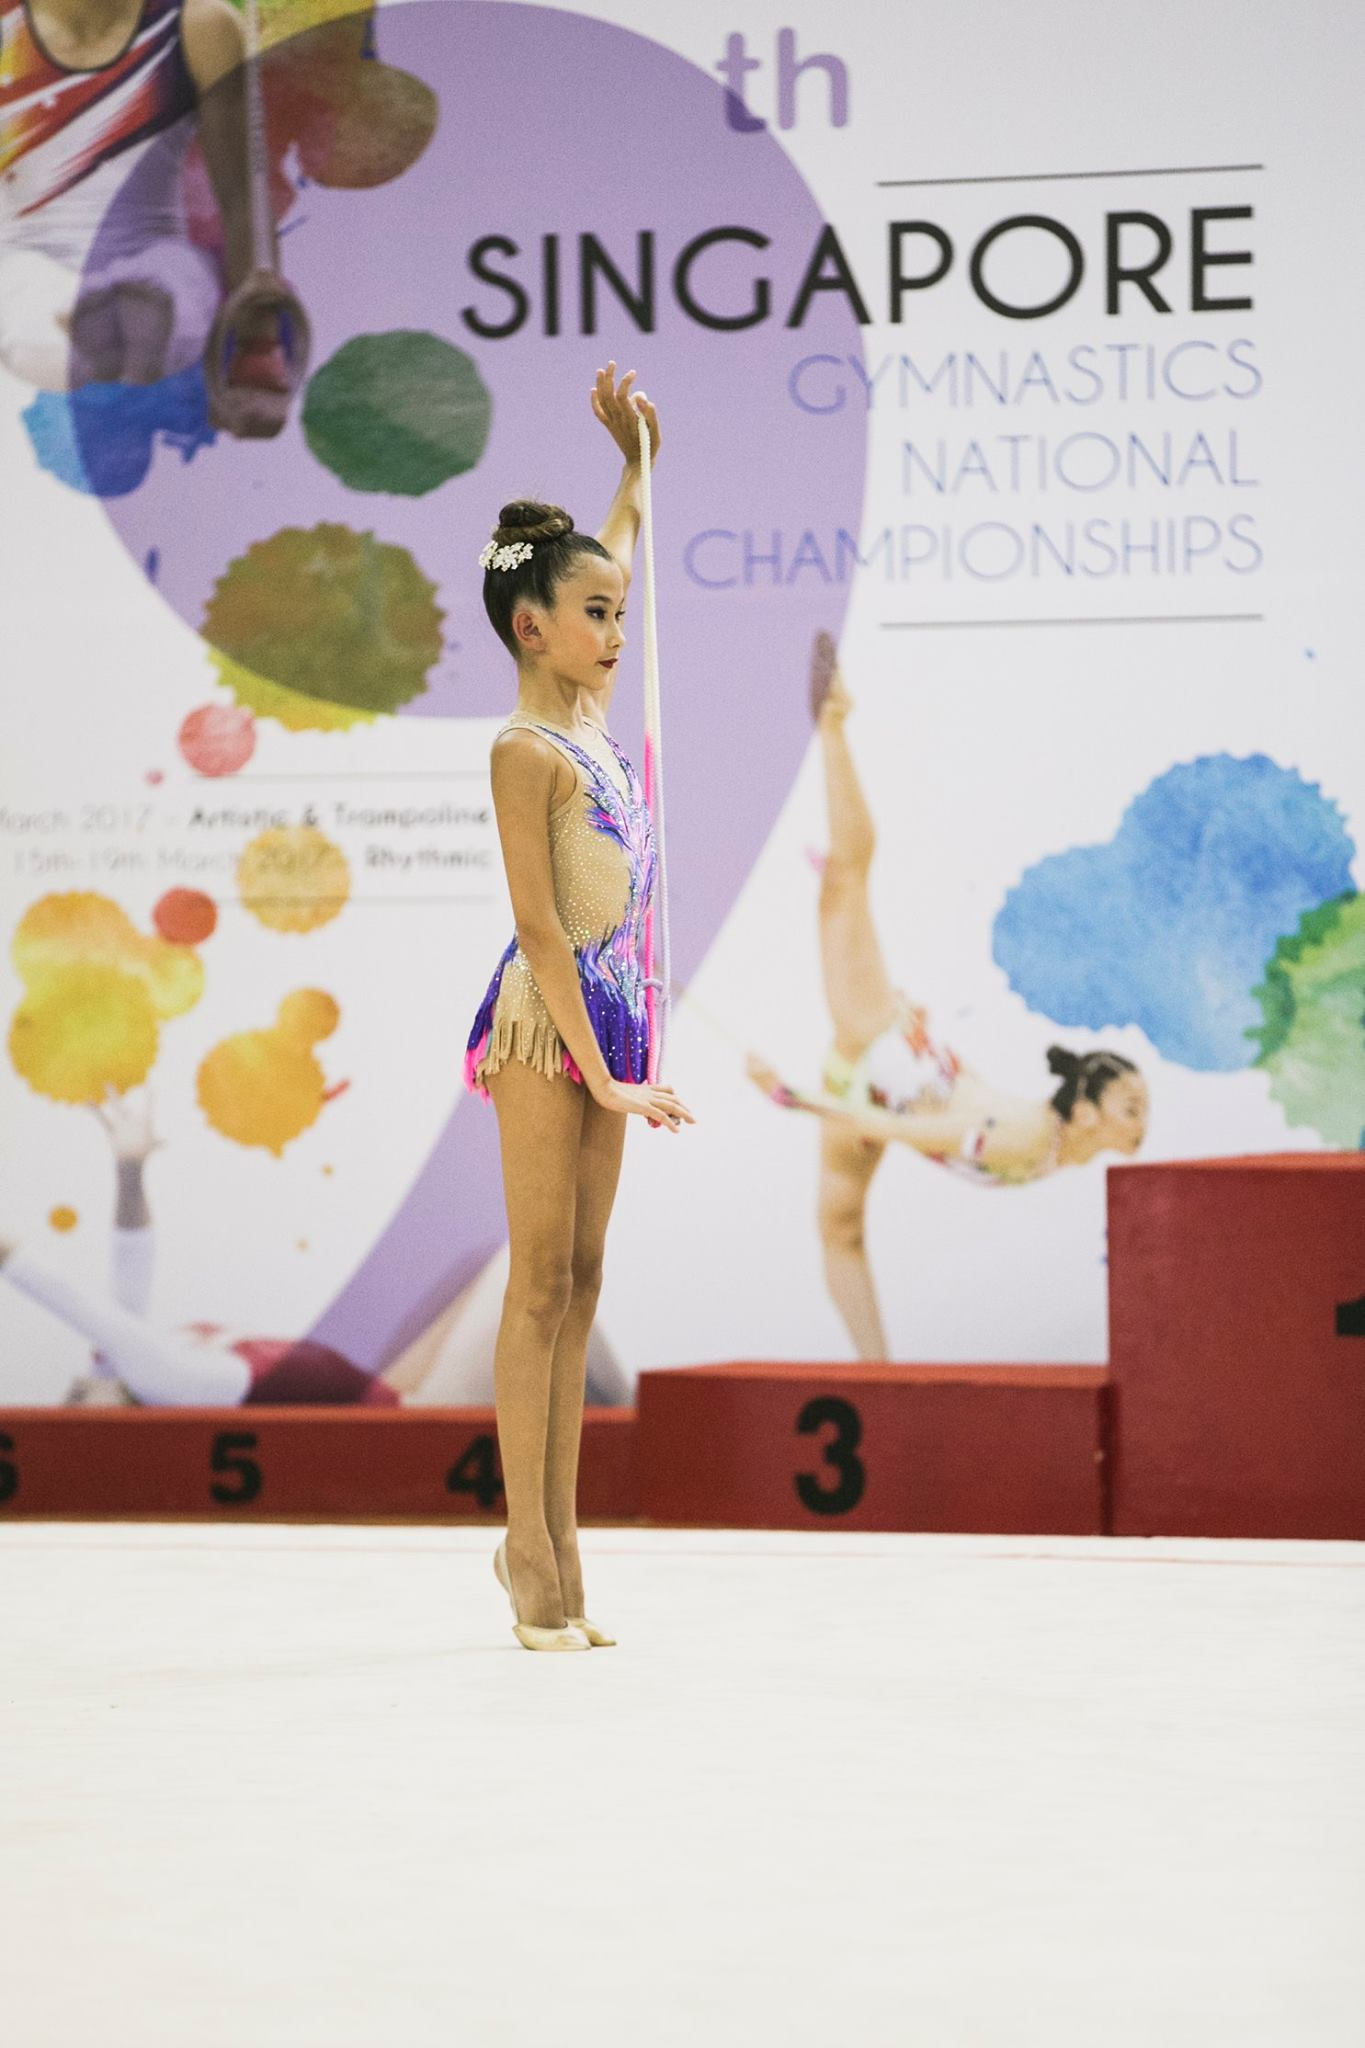 9th Singapore Gymnastics National Championships 2017 21